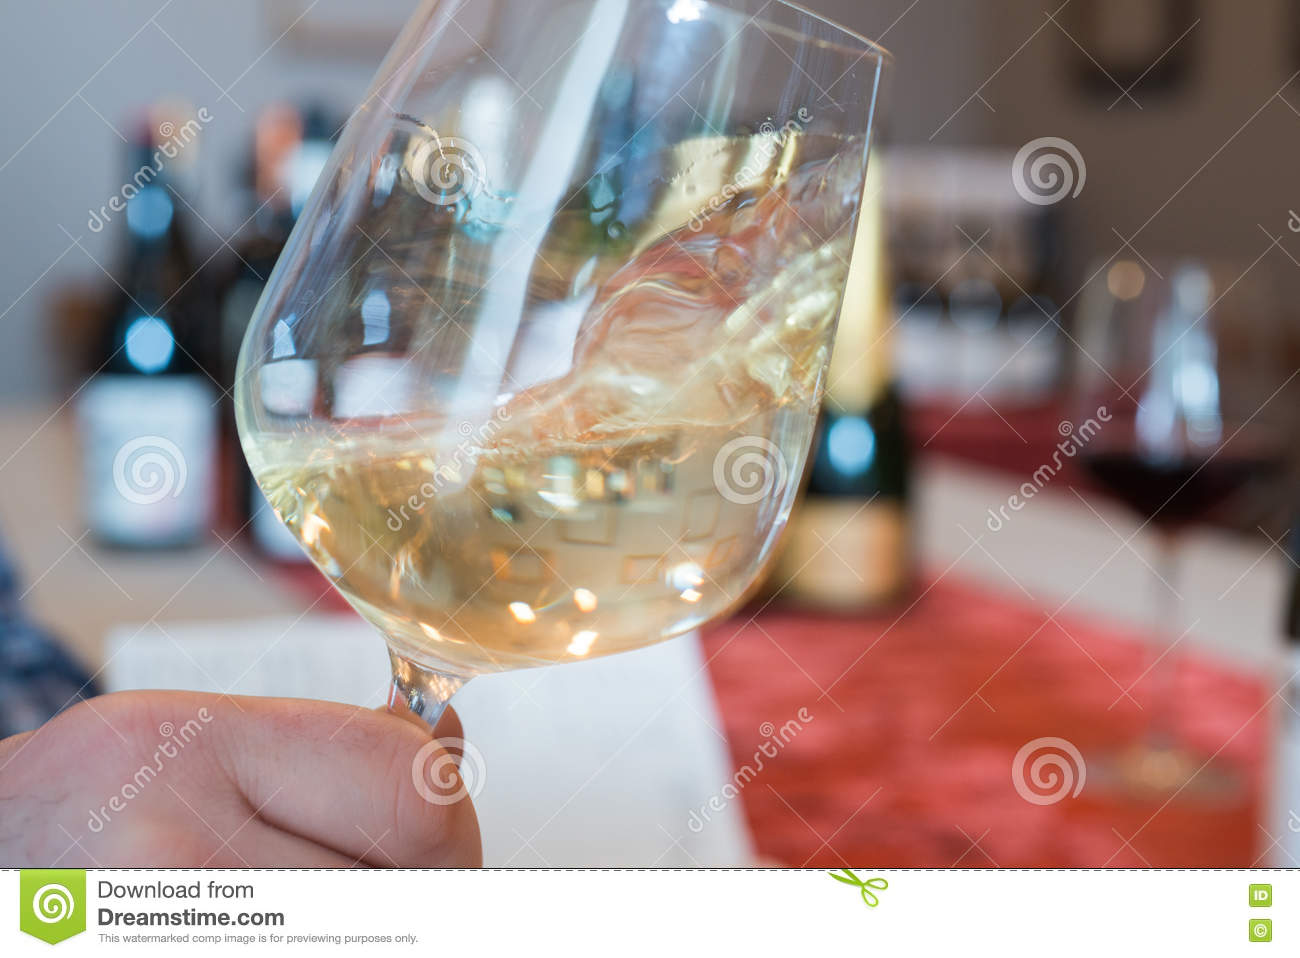 Swirling White Wine in a Wineglass